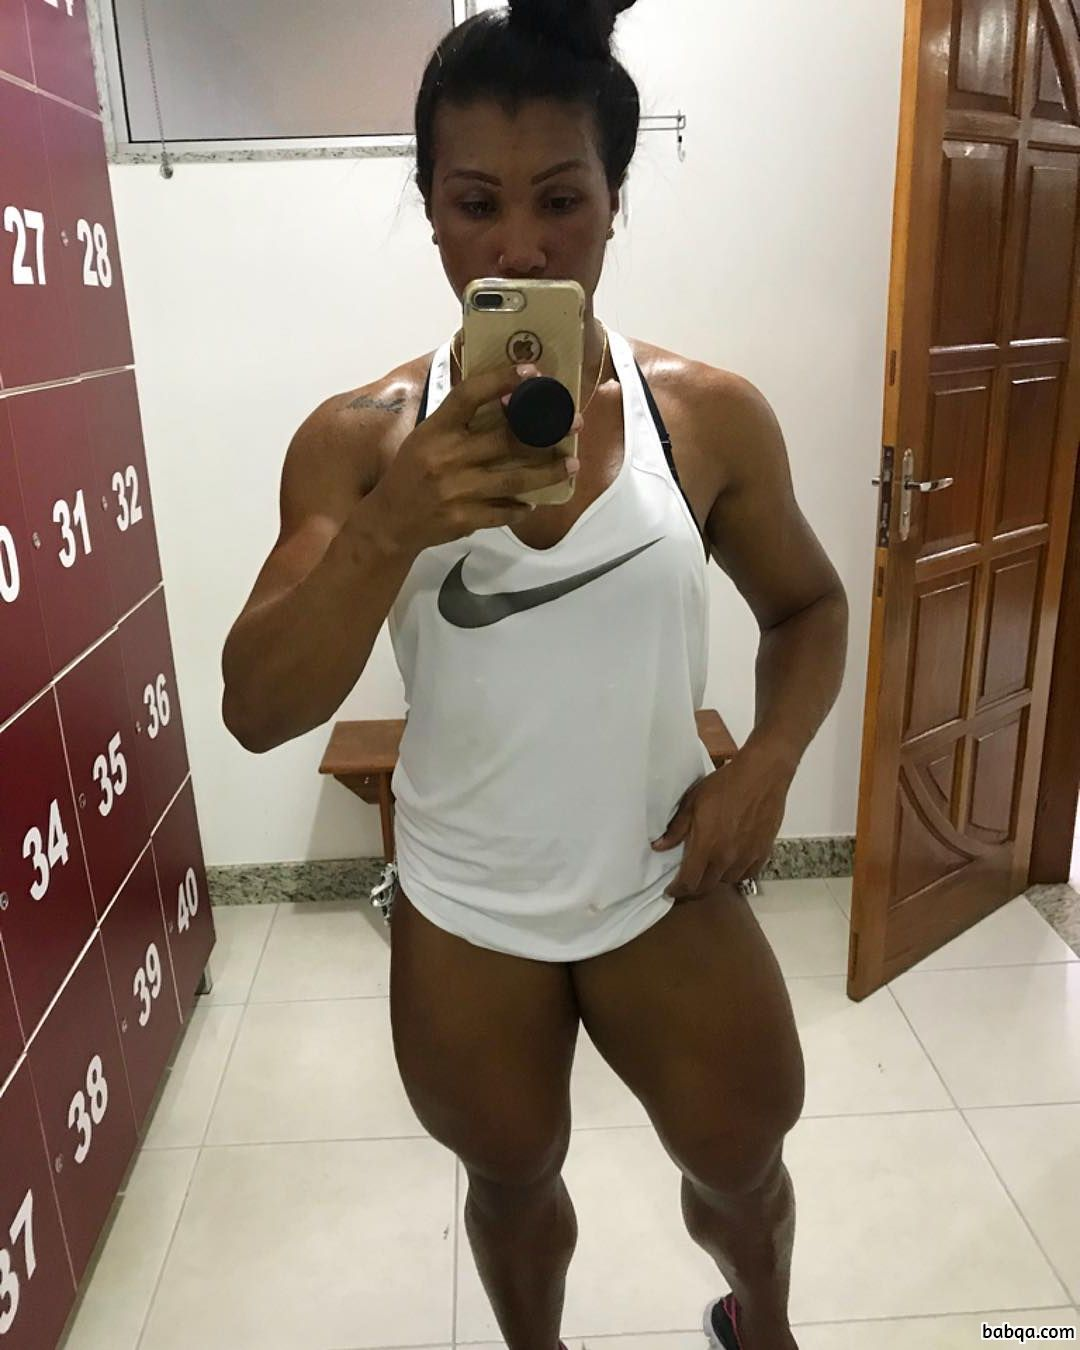 perfect woman with strong body and muscle bottom image from reddit